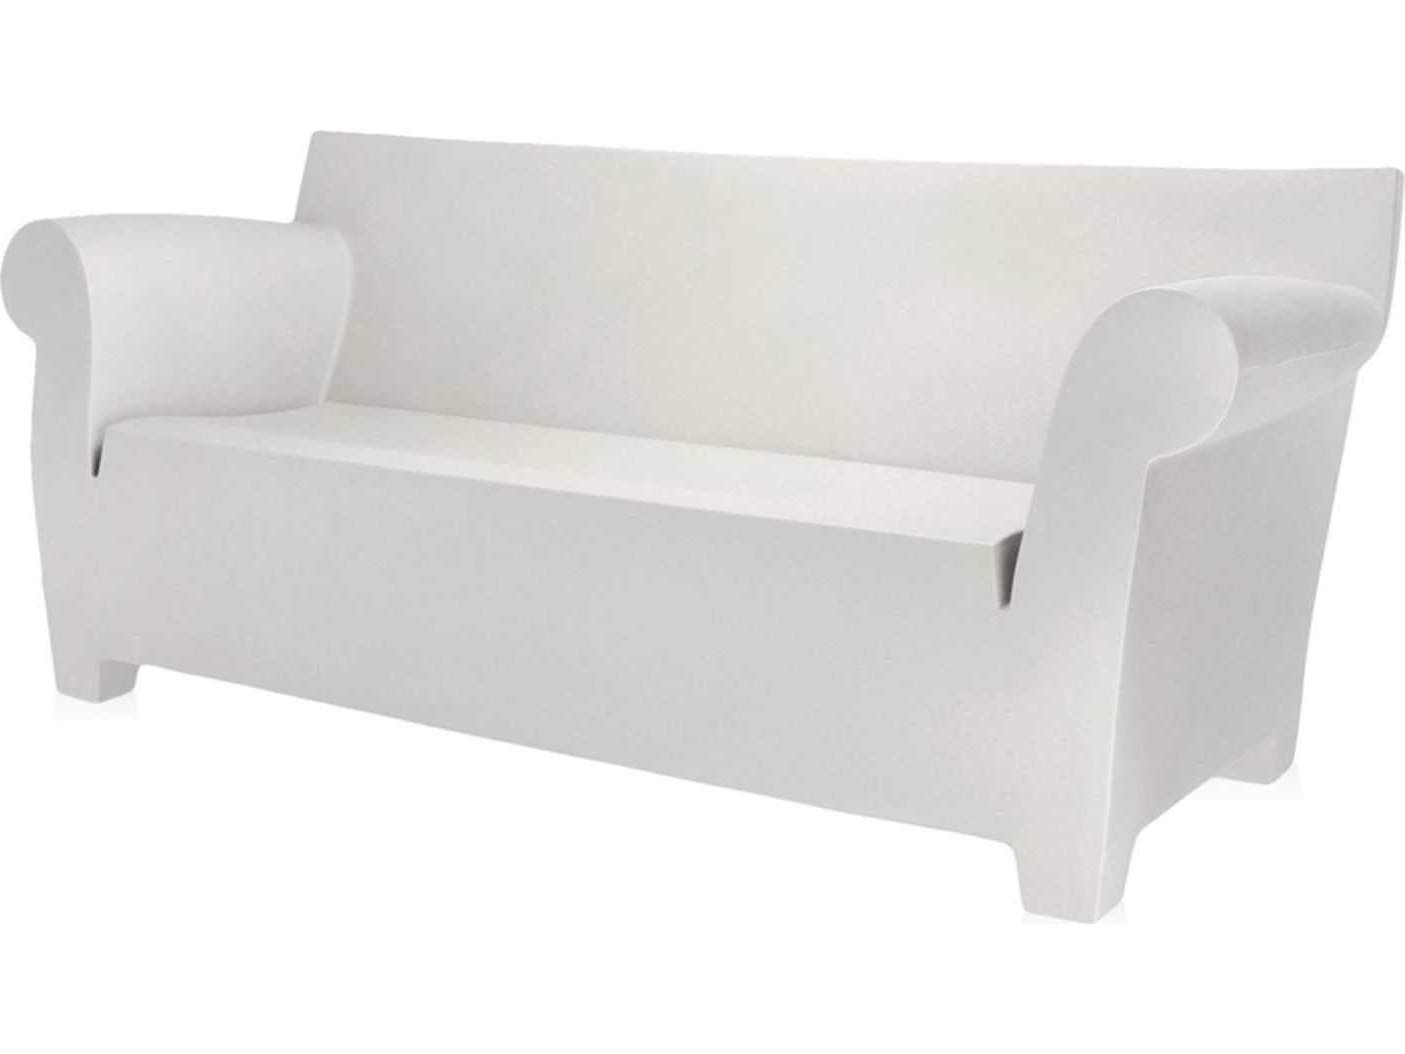 Bubble Club Sofas Intended For Well Known Kartell Bubble Club Zinc White Sofa (View 8 of 20)